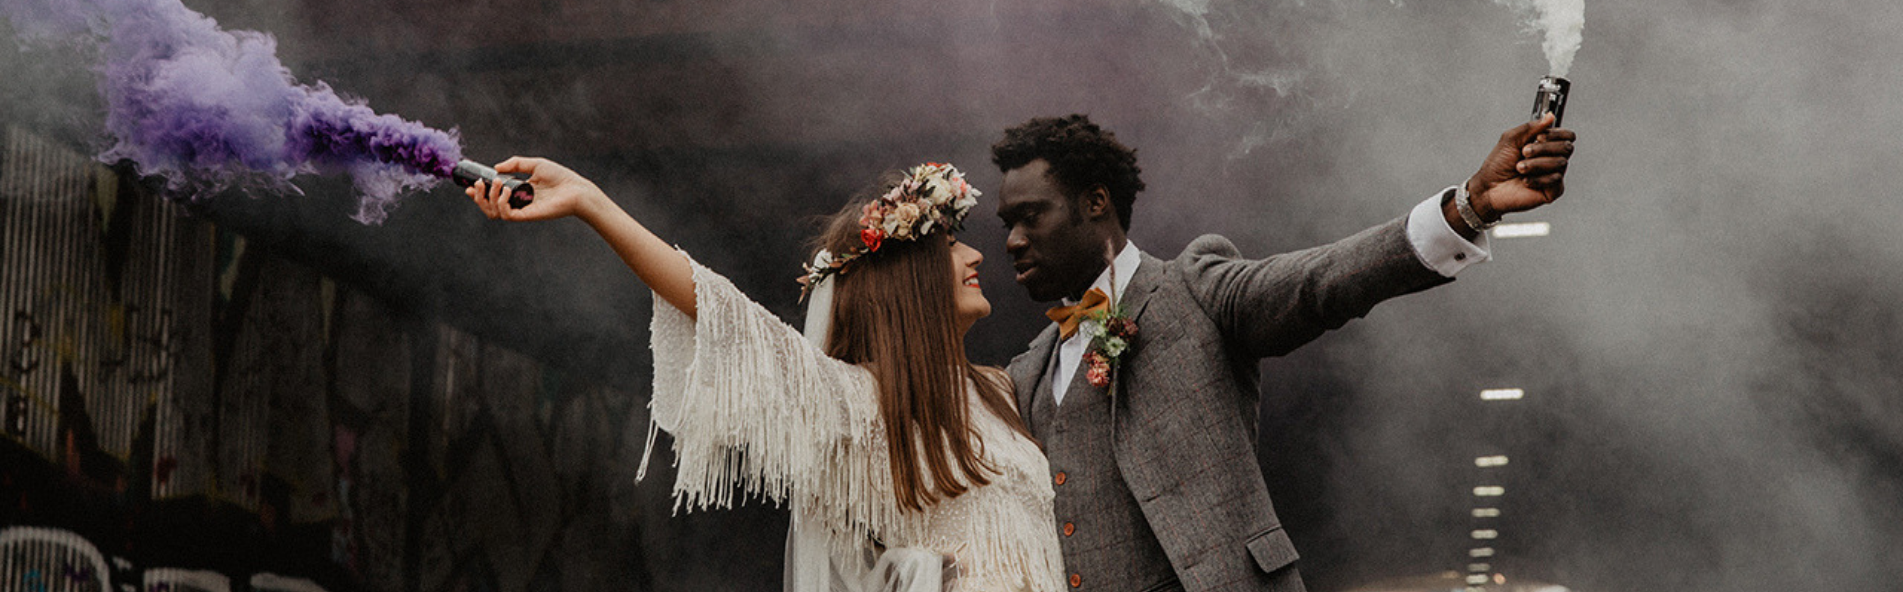 https://unconventionalwedding.co.uk/wp-content/uploads/2019/04/Nikki-Shea-Photography-alternative-wedding-photographer-banner-pic.png